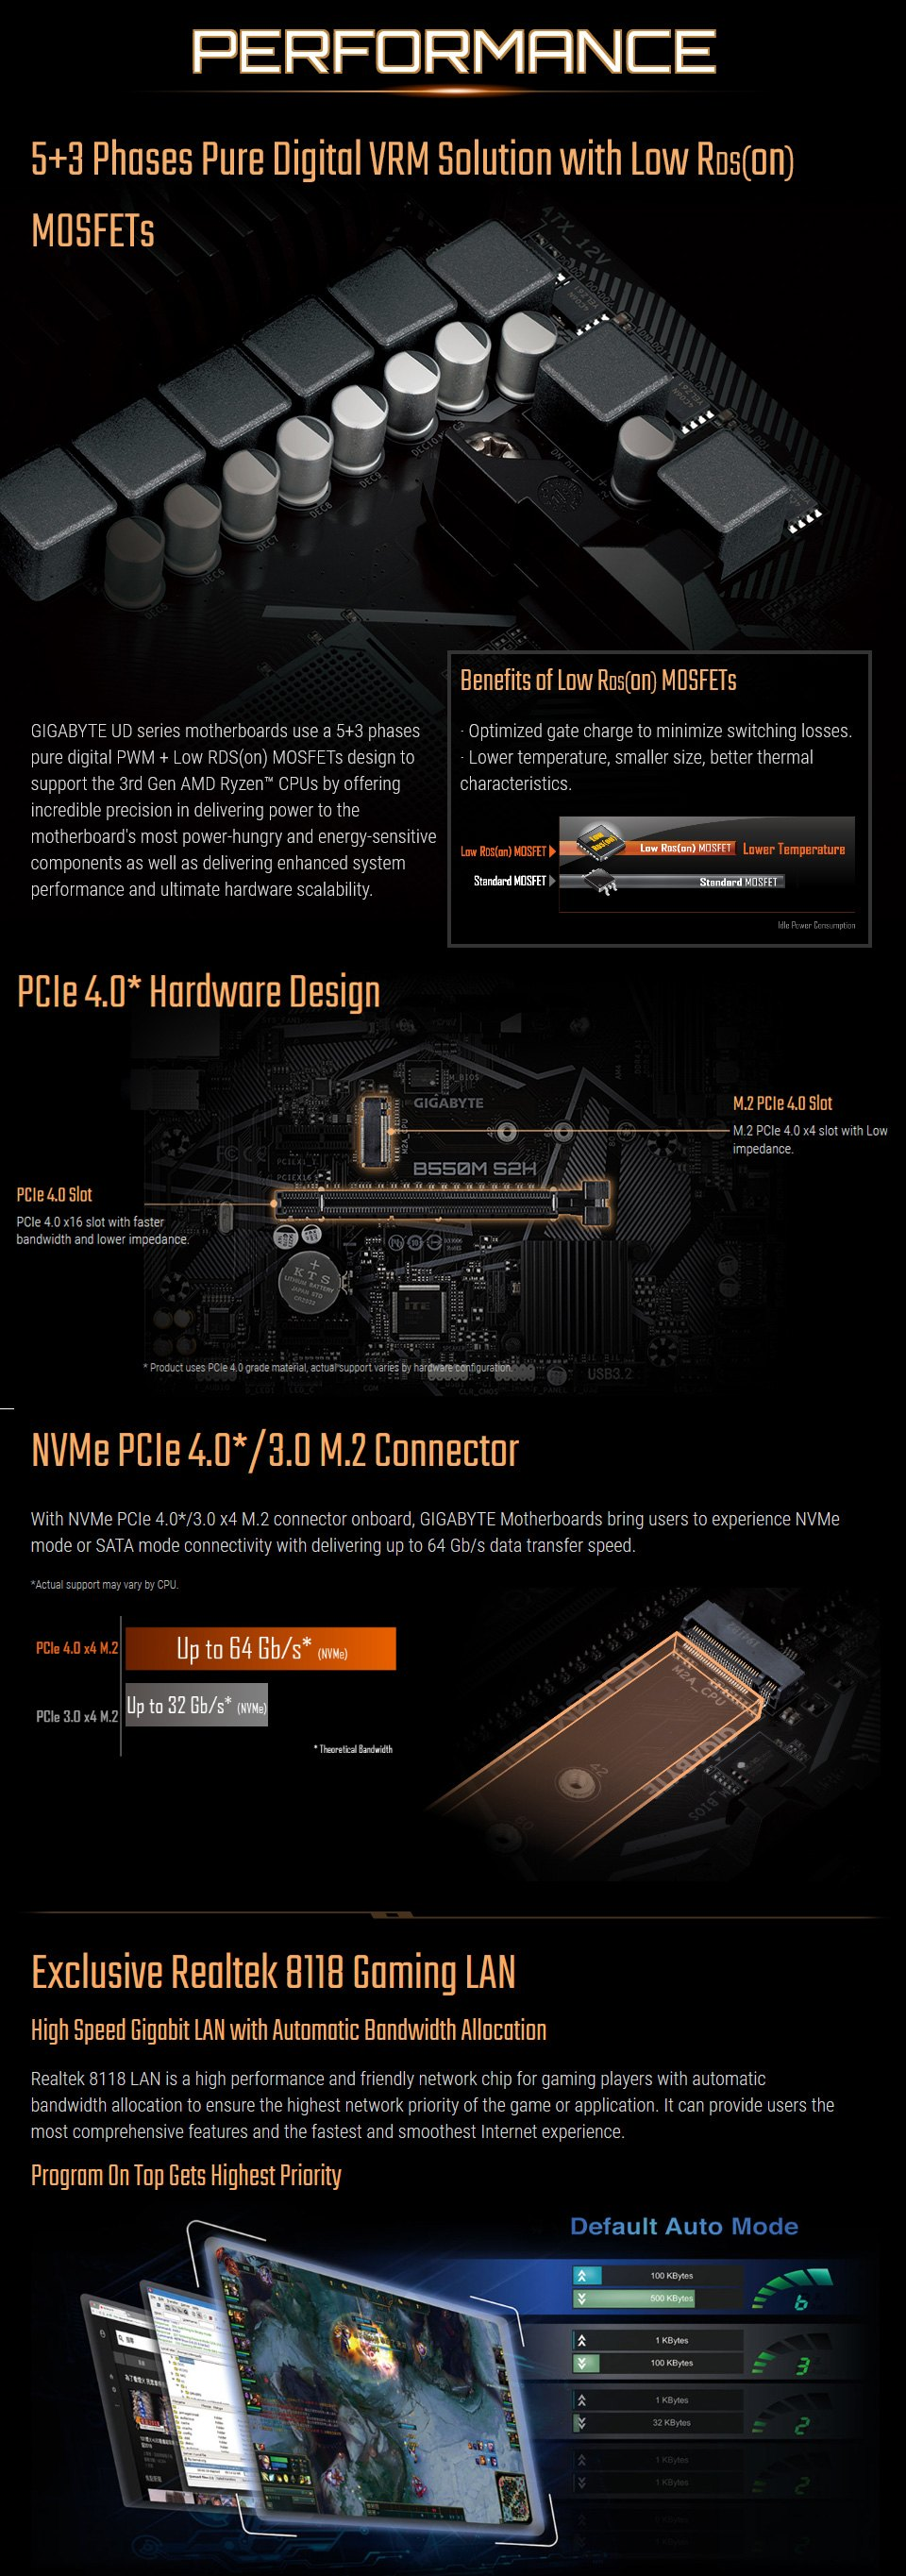 Gigabyte B550M S2H Motherboard features